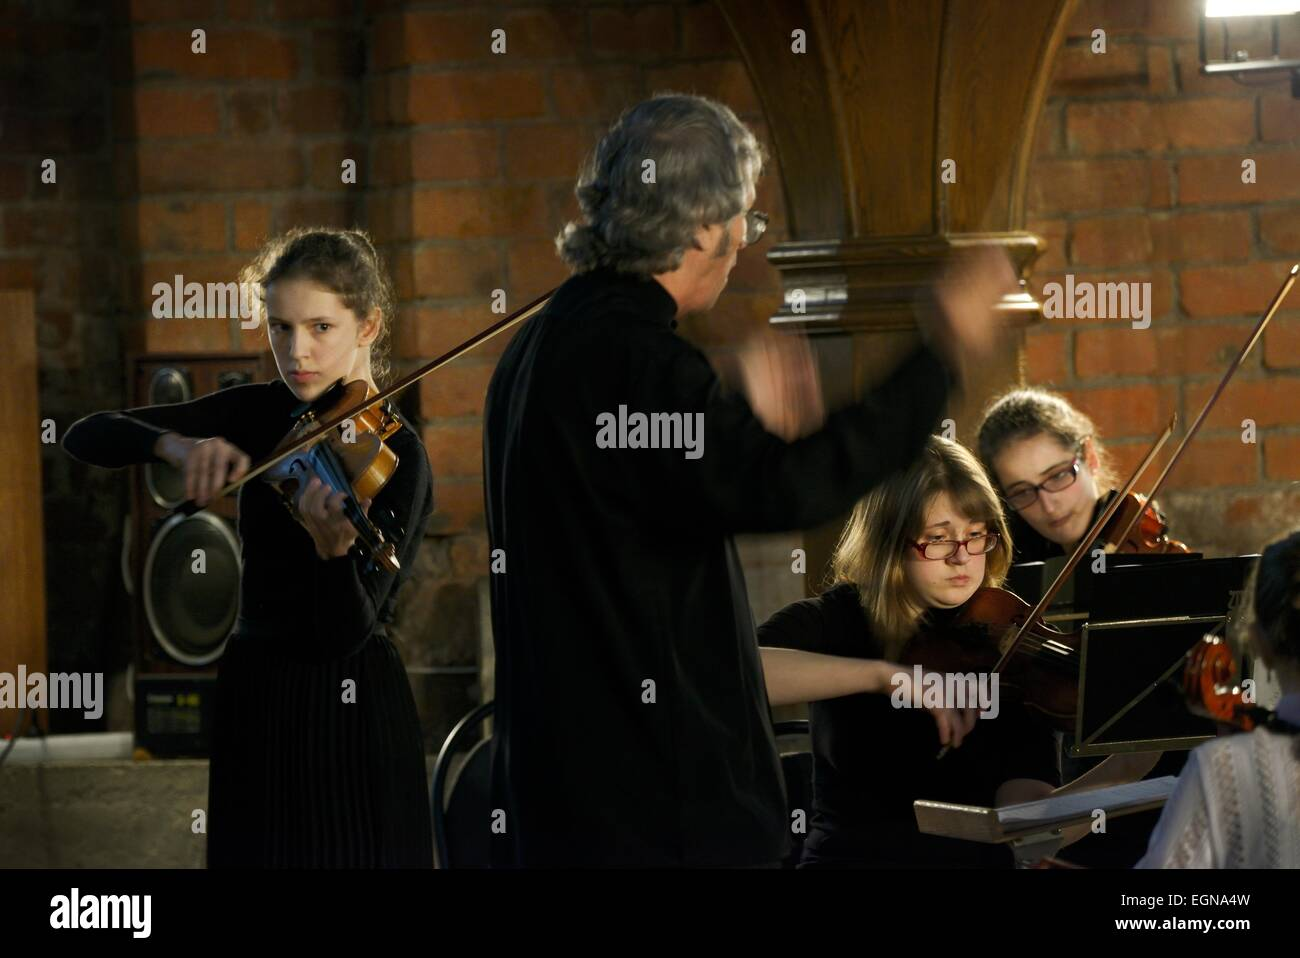 Riga Latvia. Conductor, lead violinist and members of youth orchestra during classical music recital inside Saint - Stock Image